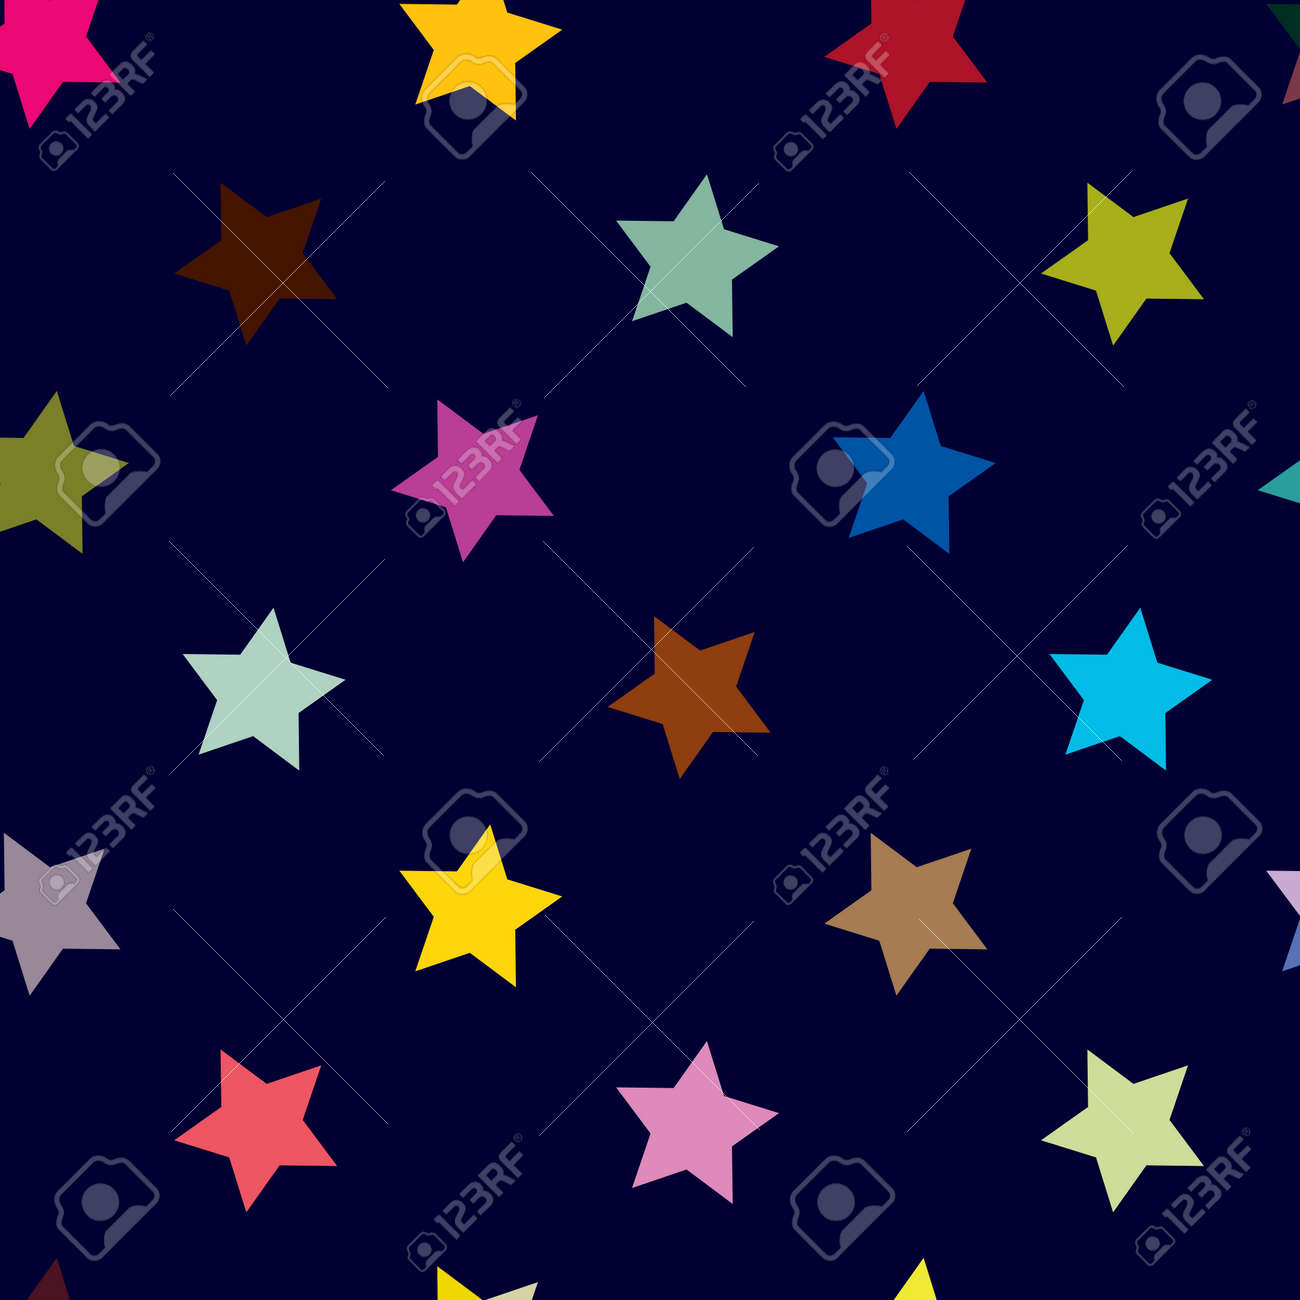 Repeatable star background, star pattern. Seamless starry wrapping paper pattern. Vector illustration - 168465842